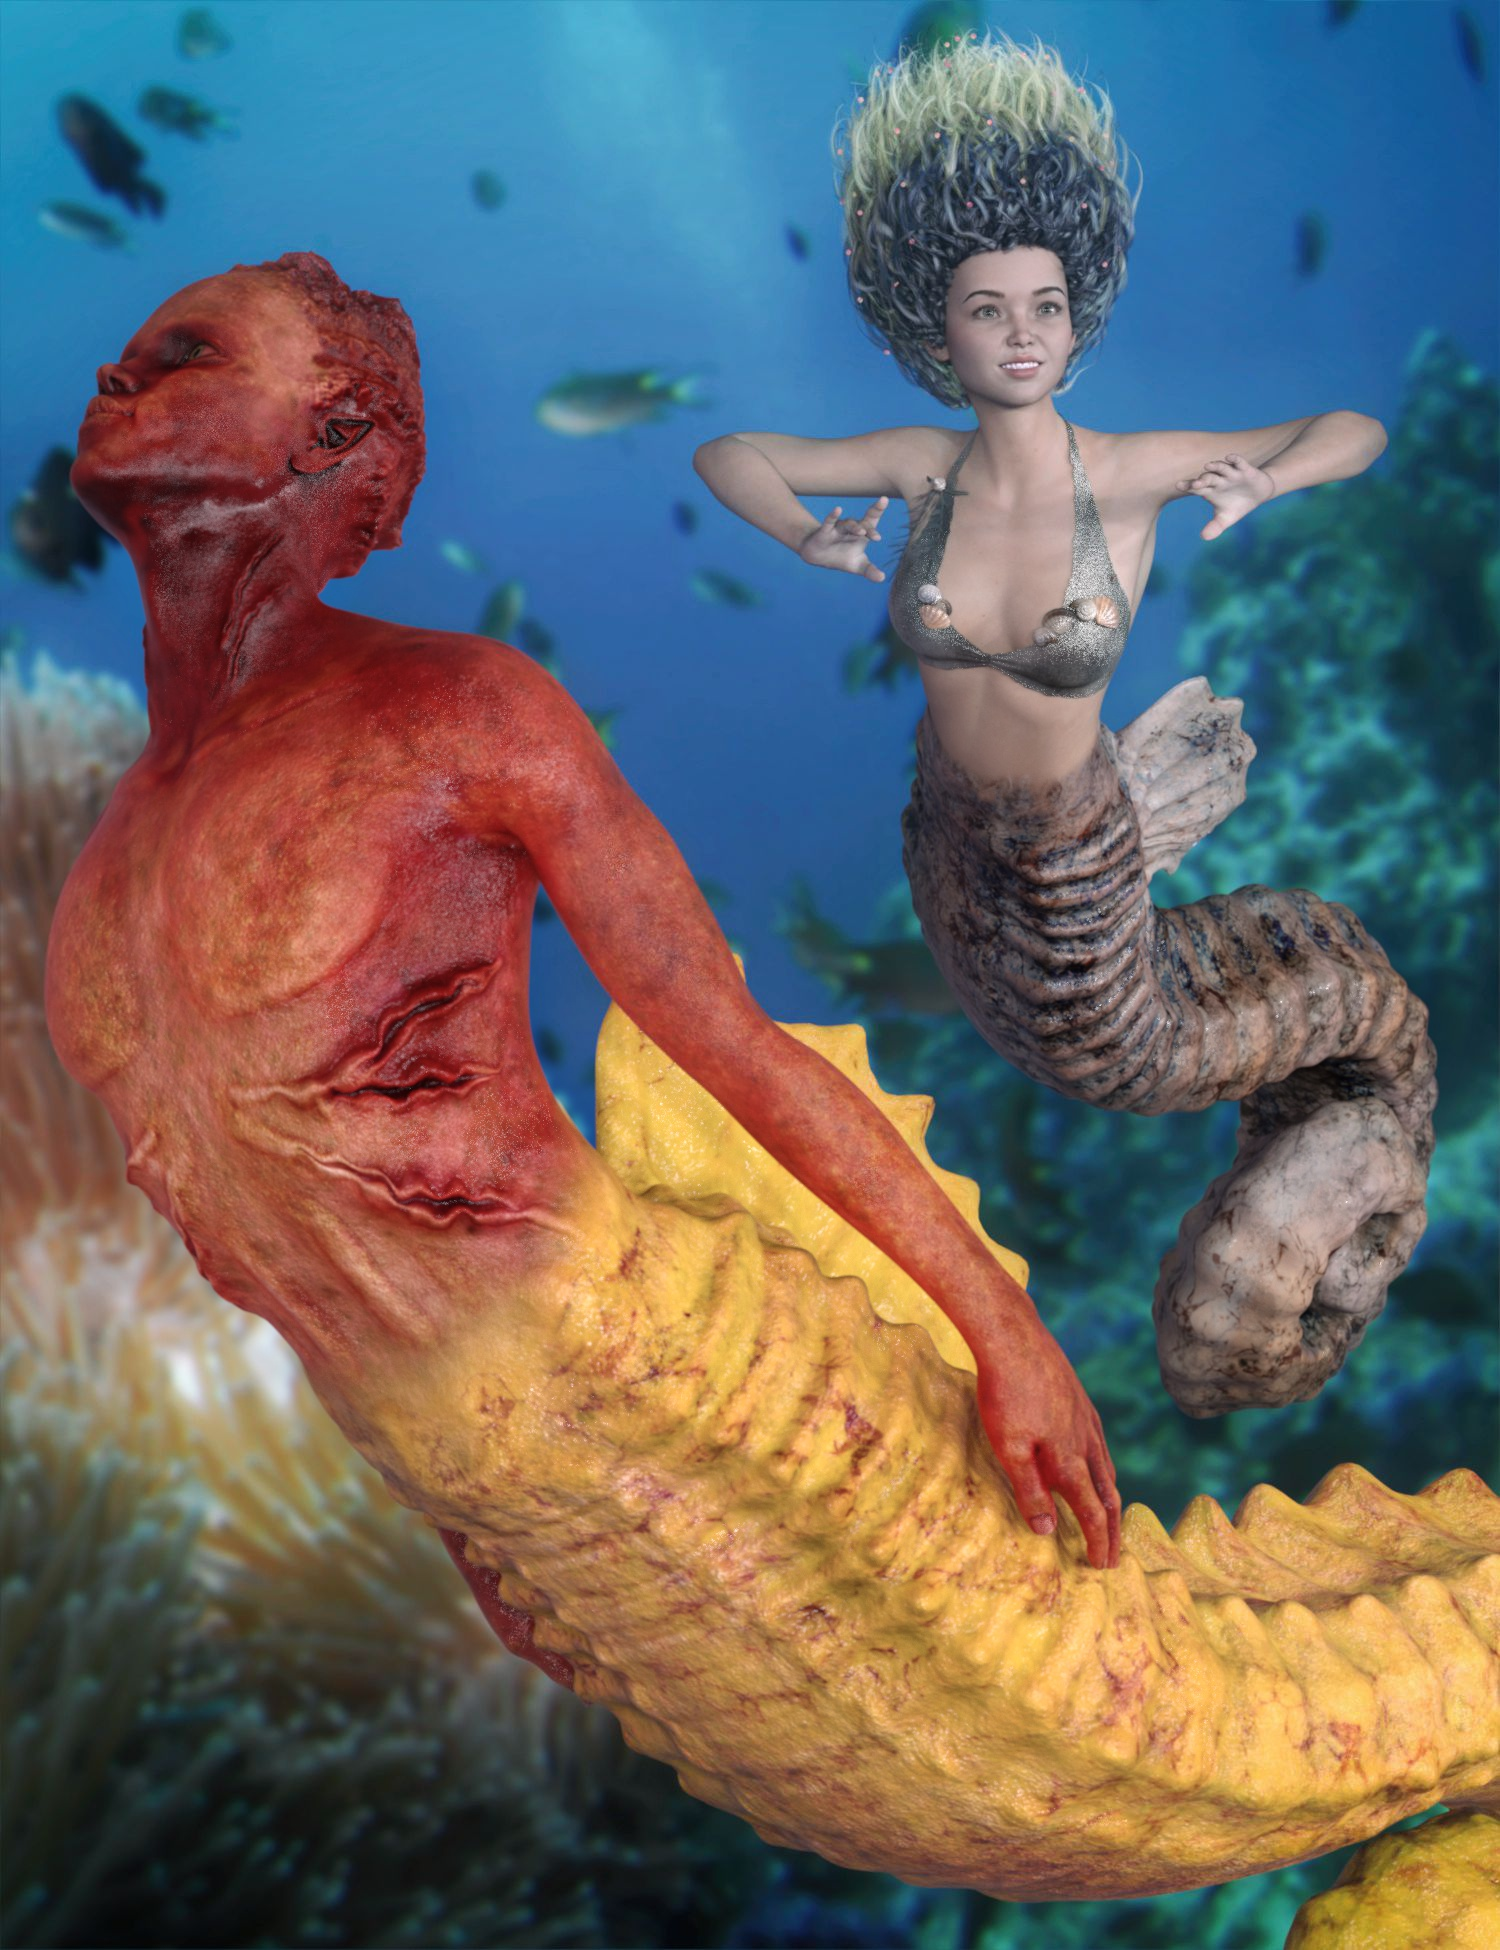 SeaHorse MegaBundle for Genesis 8.1 and for Seahorse Tails by: 3D-GHDesignSadeAe Ti, 3D Models by Daz 3D